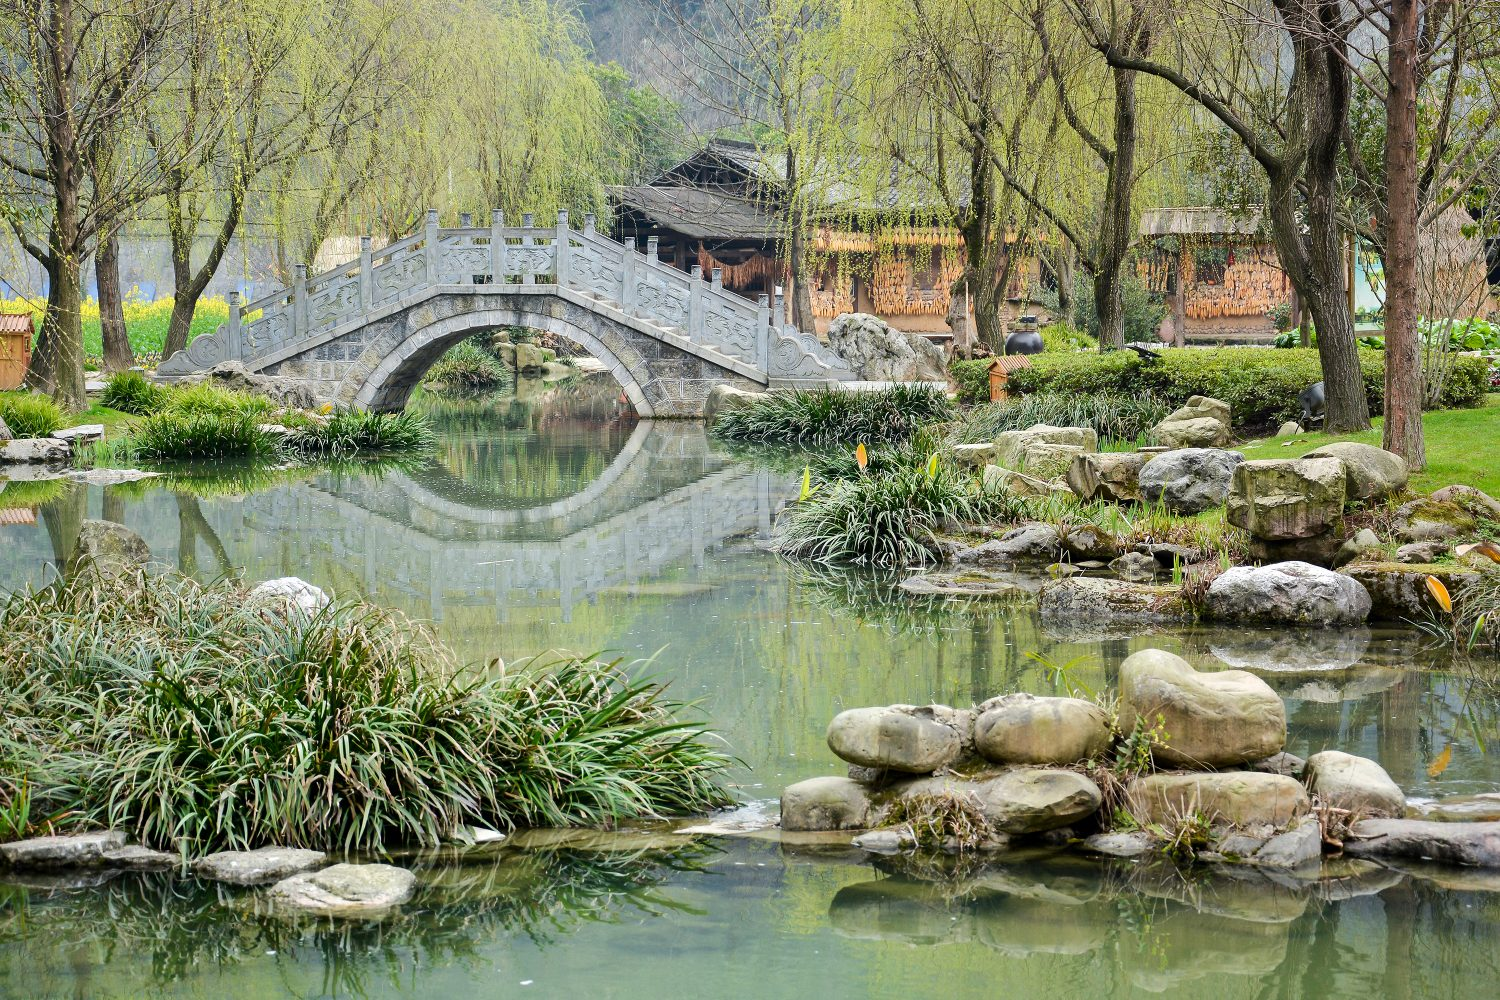 Chinese Garden With Ancient Stone Bridge - Trips to China